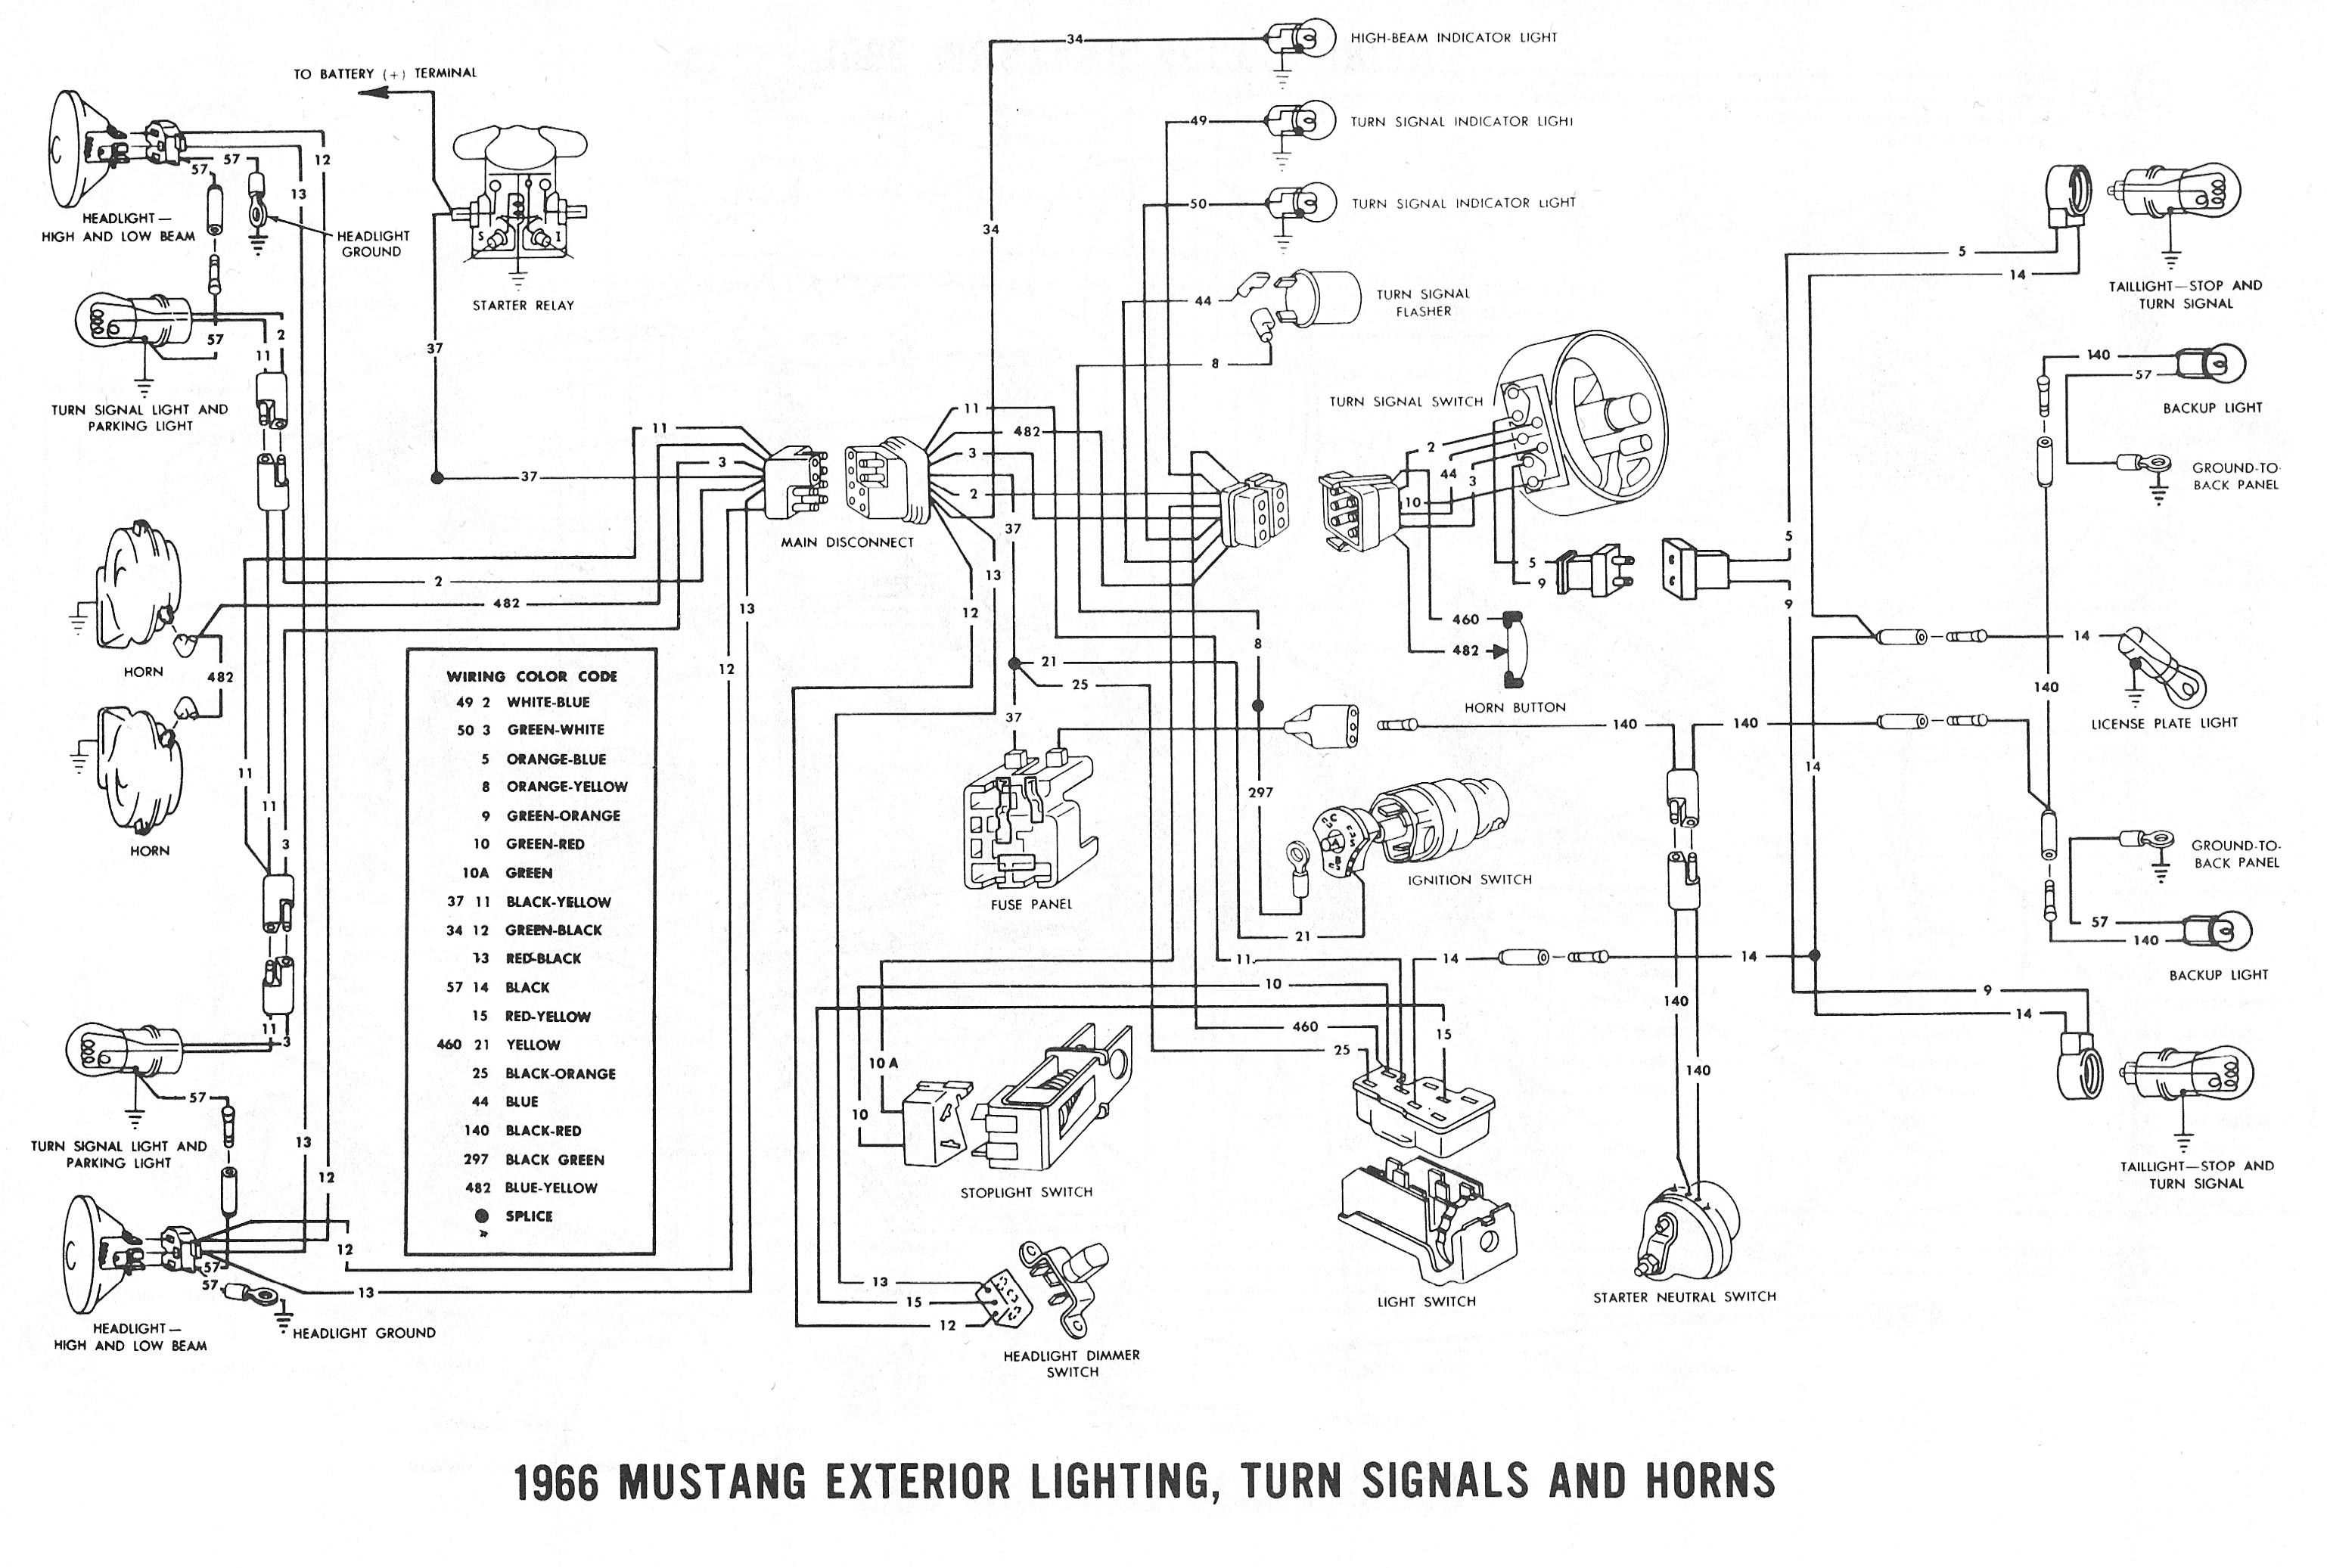 [DIAGRAM_4PO]  162 65 Mustang Lights Wiring Diagram | Wiring Library | 1966 Ford F100 Blinker Switch Wiring |  | Wiring Library